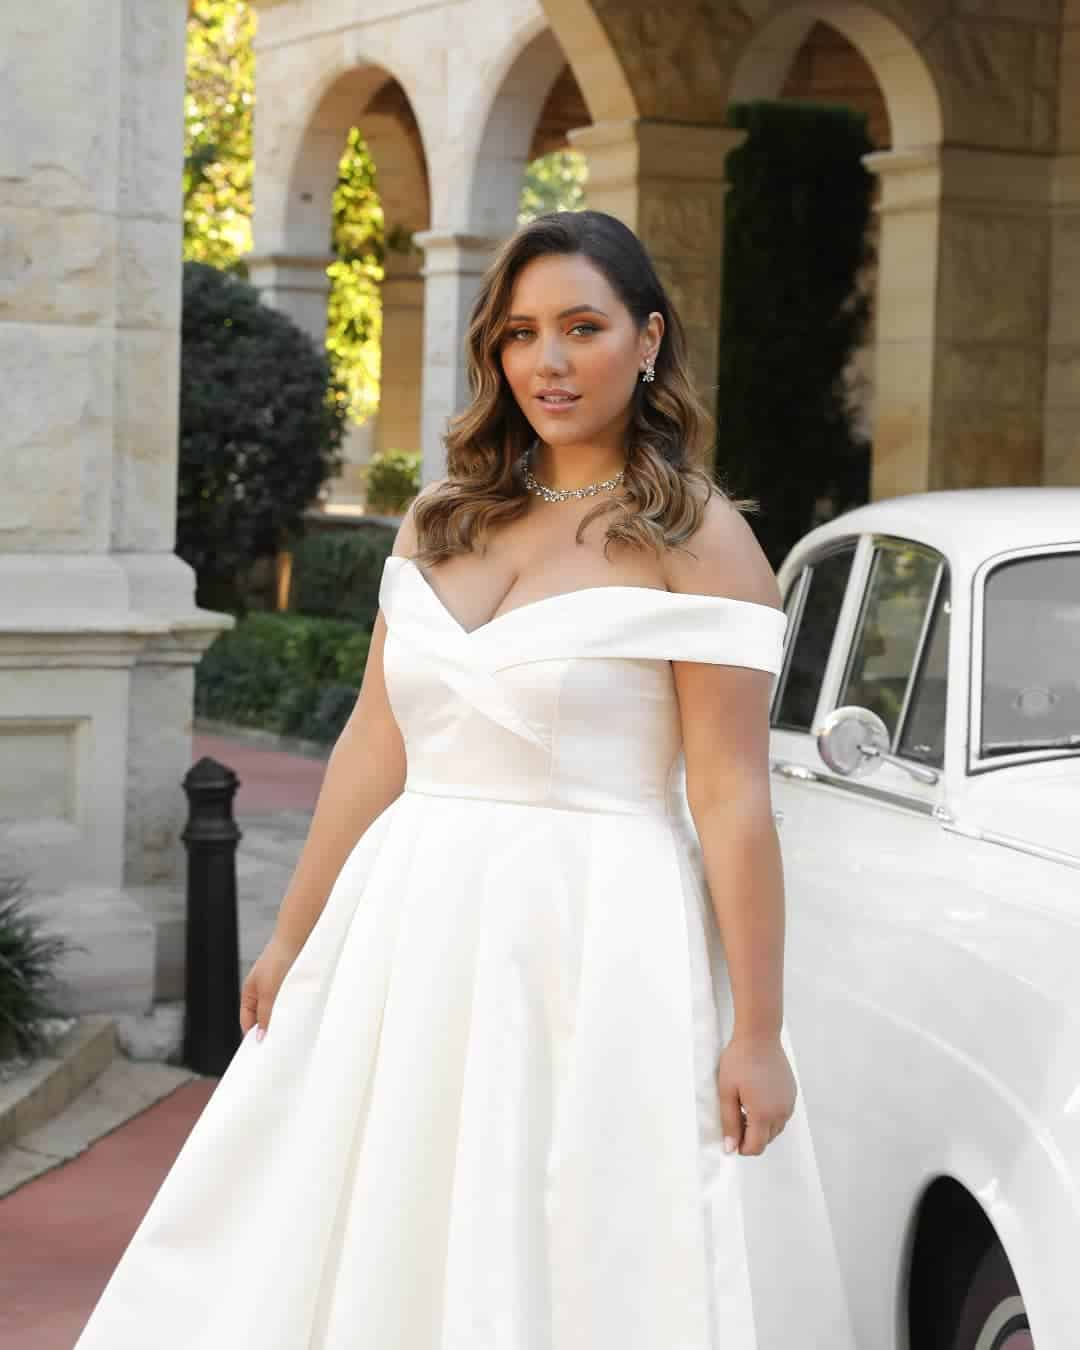 Plus Size Bridal Gowns and Wedding Dresses Perfect for Curvy Brides Ivory Off Shoulder Satin Dress 2